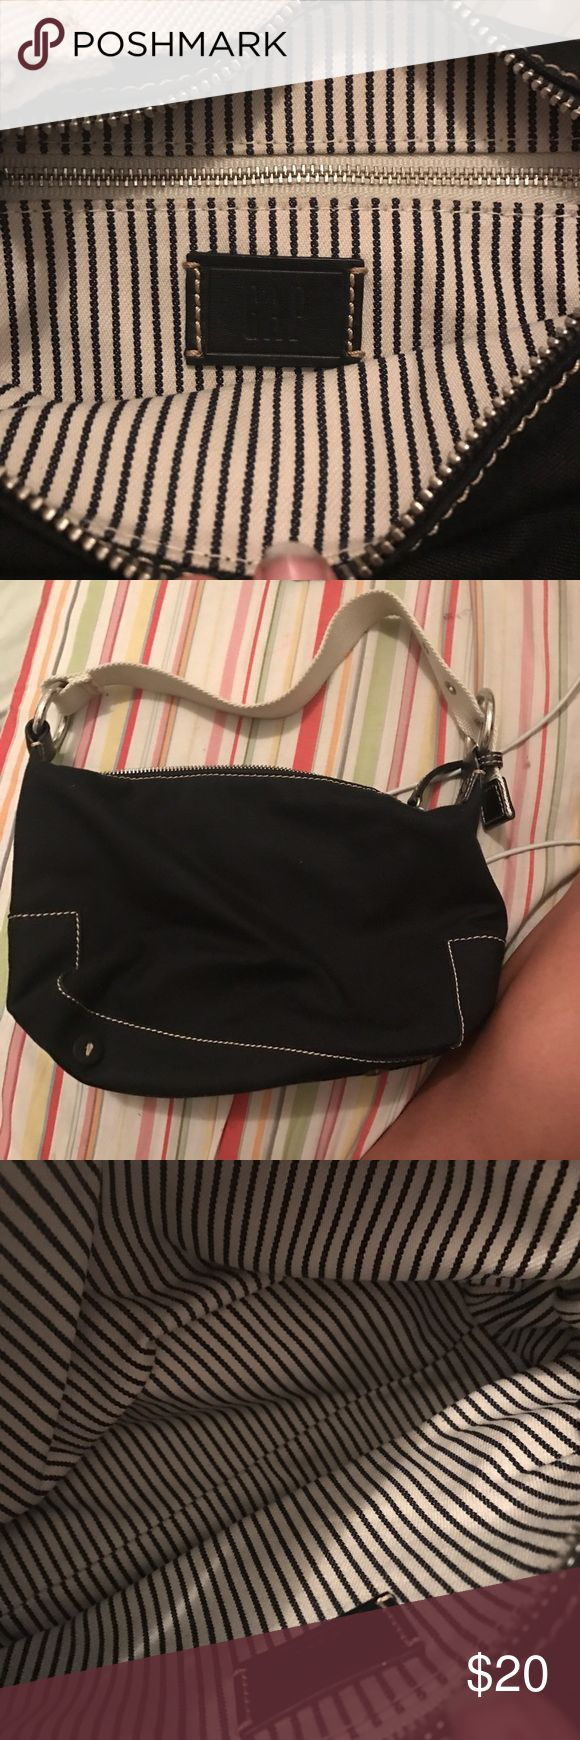 Black gap purse Amazing condition GAP Bags